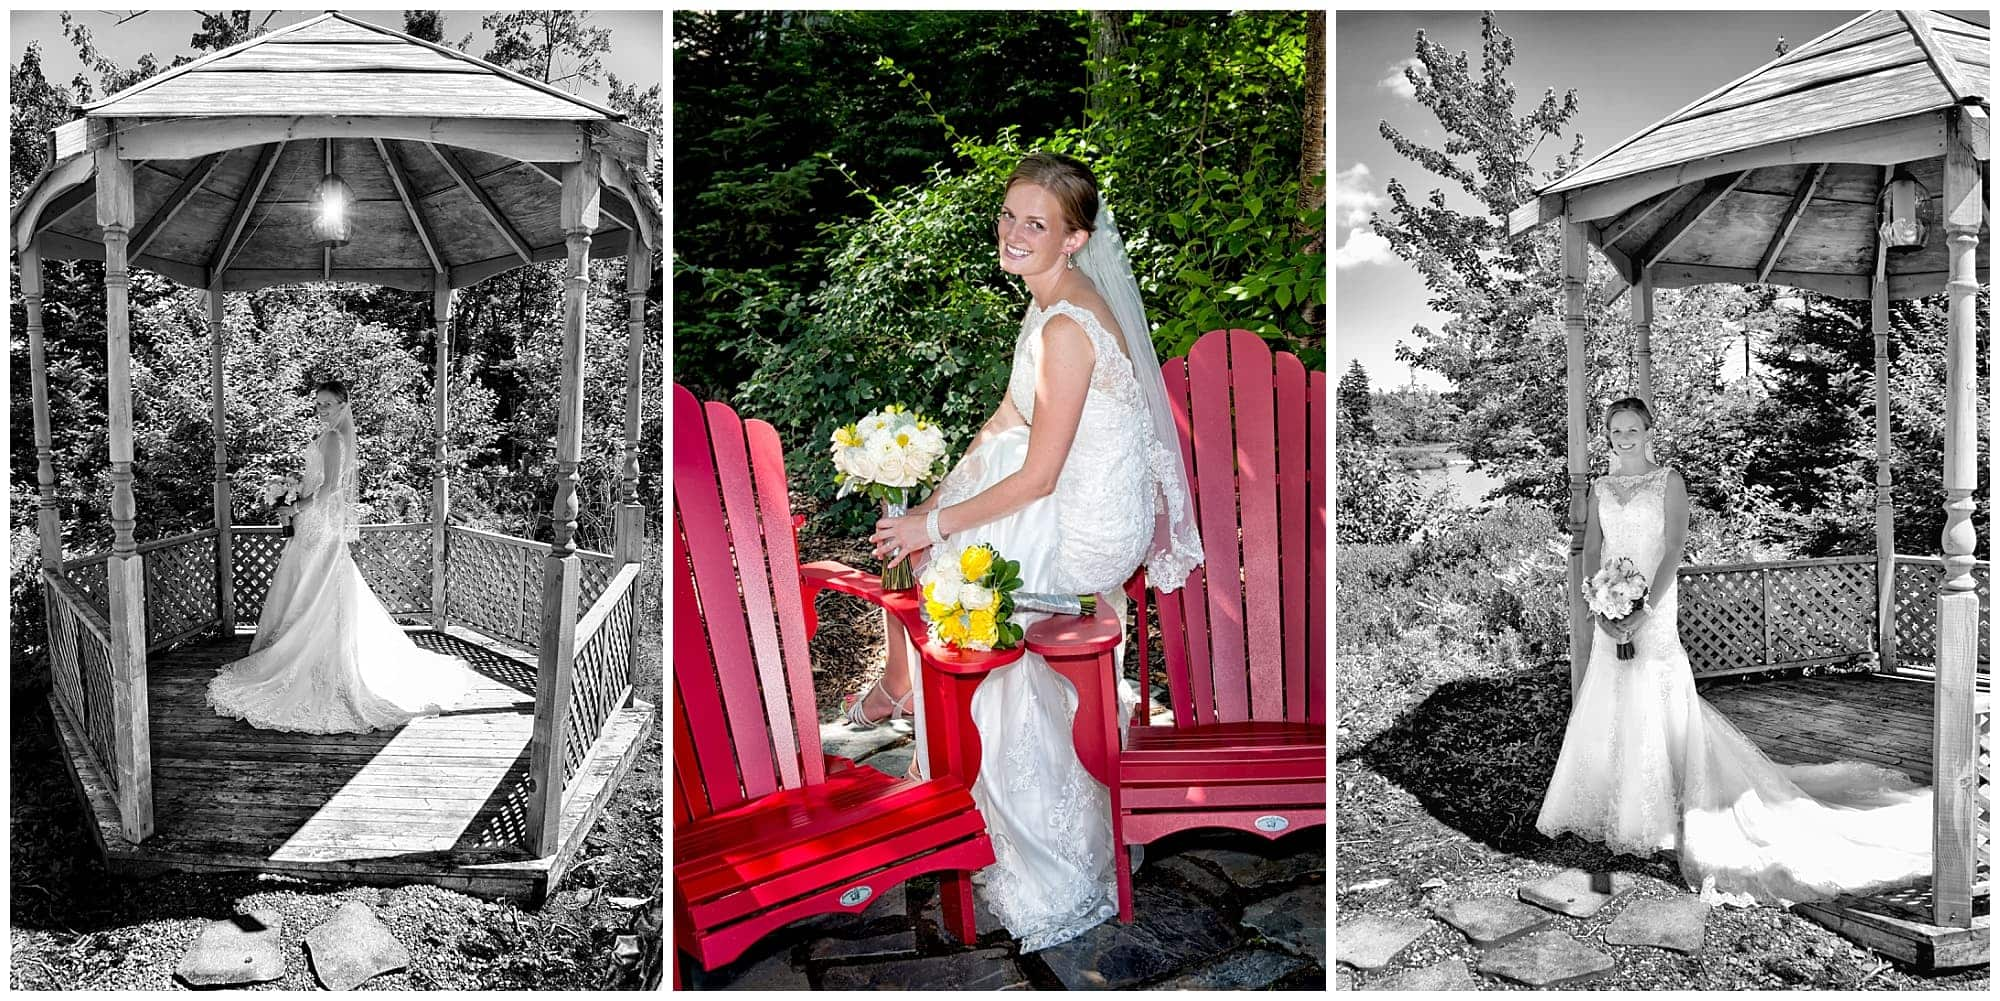 The bridal wedding photos of the bride among a gazebo and sitting on red chairs at her parent's home in Cole Harbour.